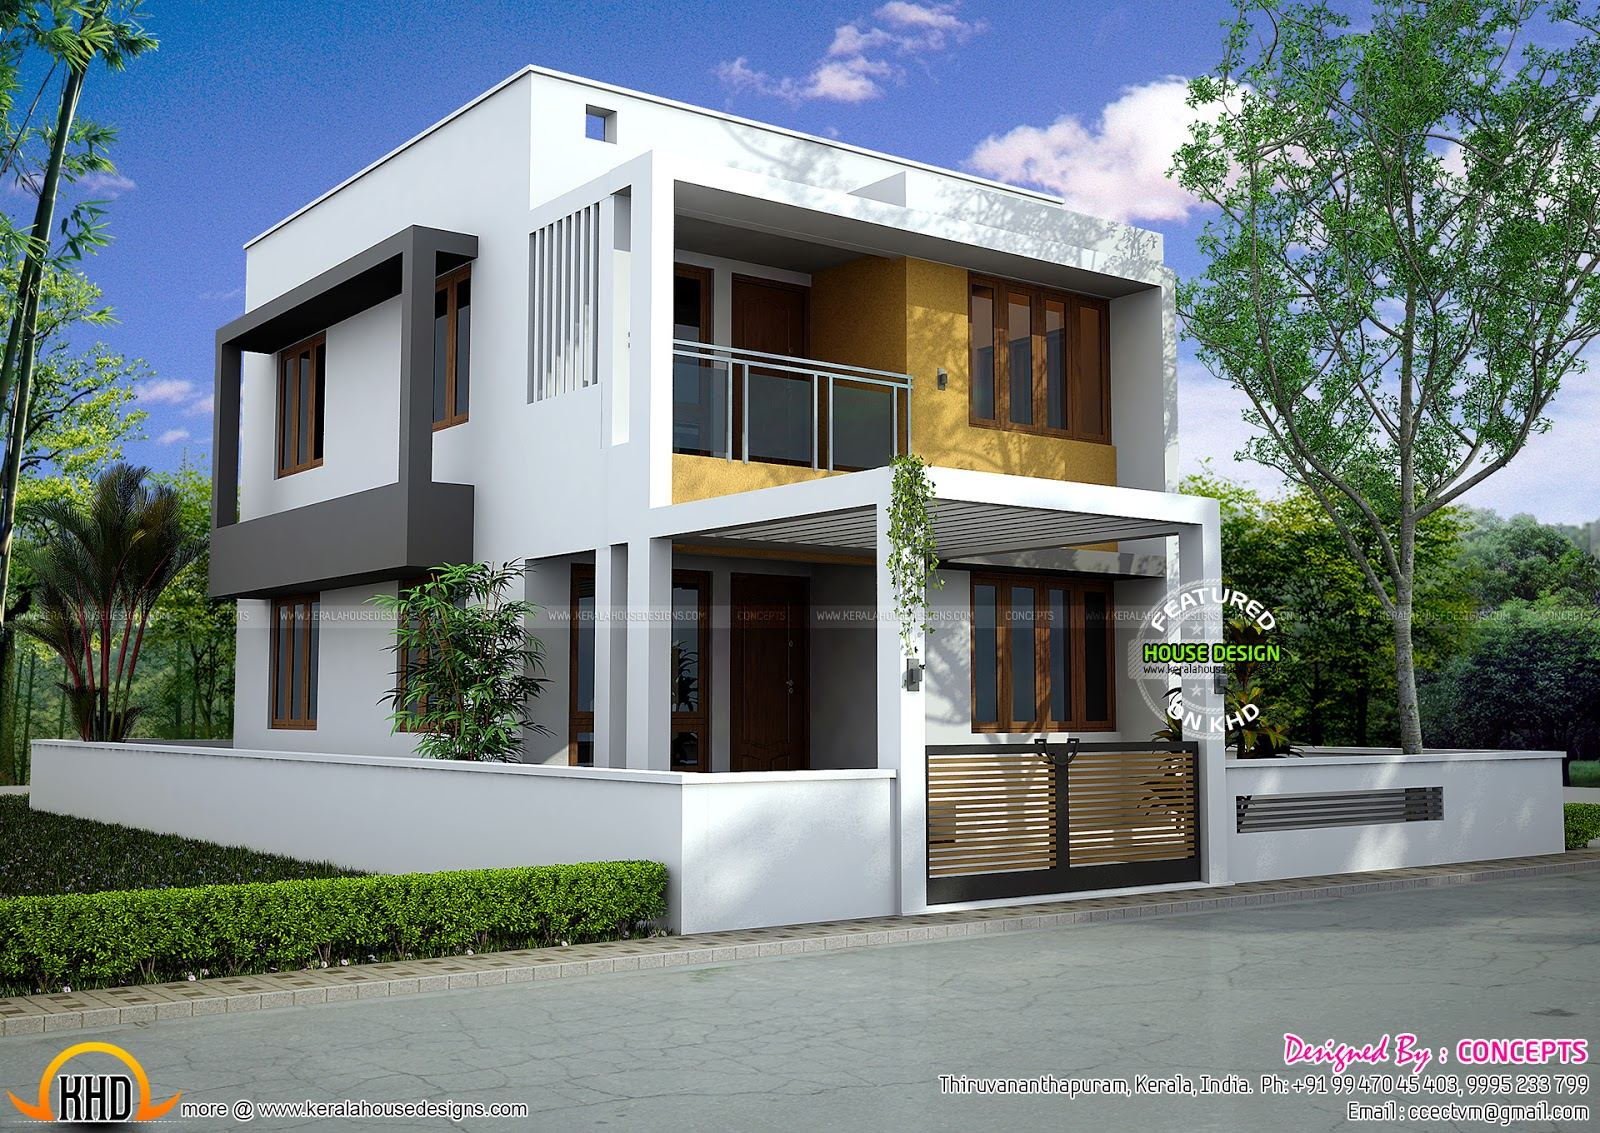 Floor plan of modern 3 bedroom house kerala home design for Modern 3 bedroom house design